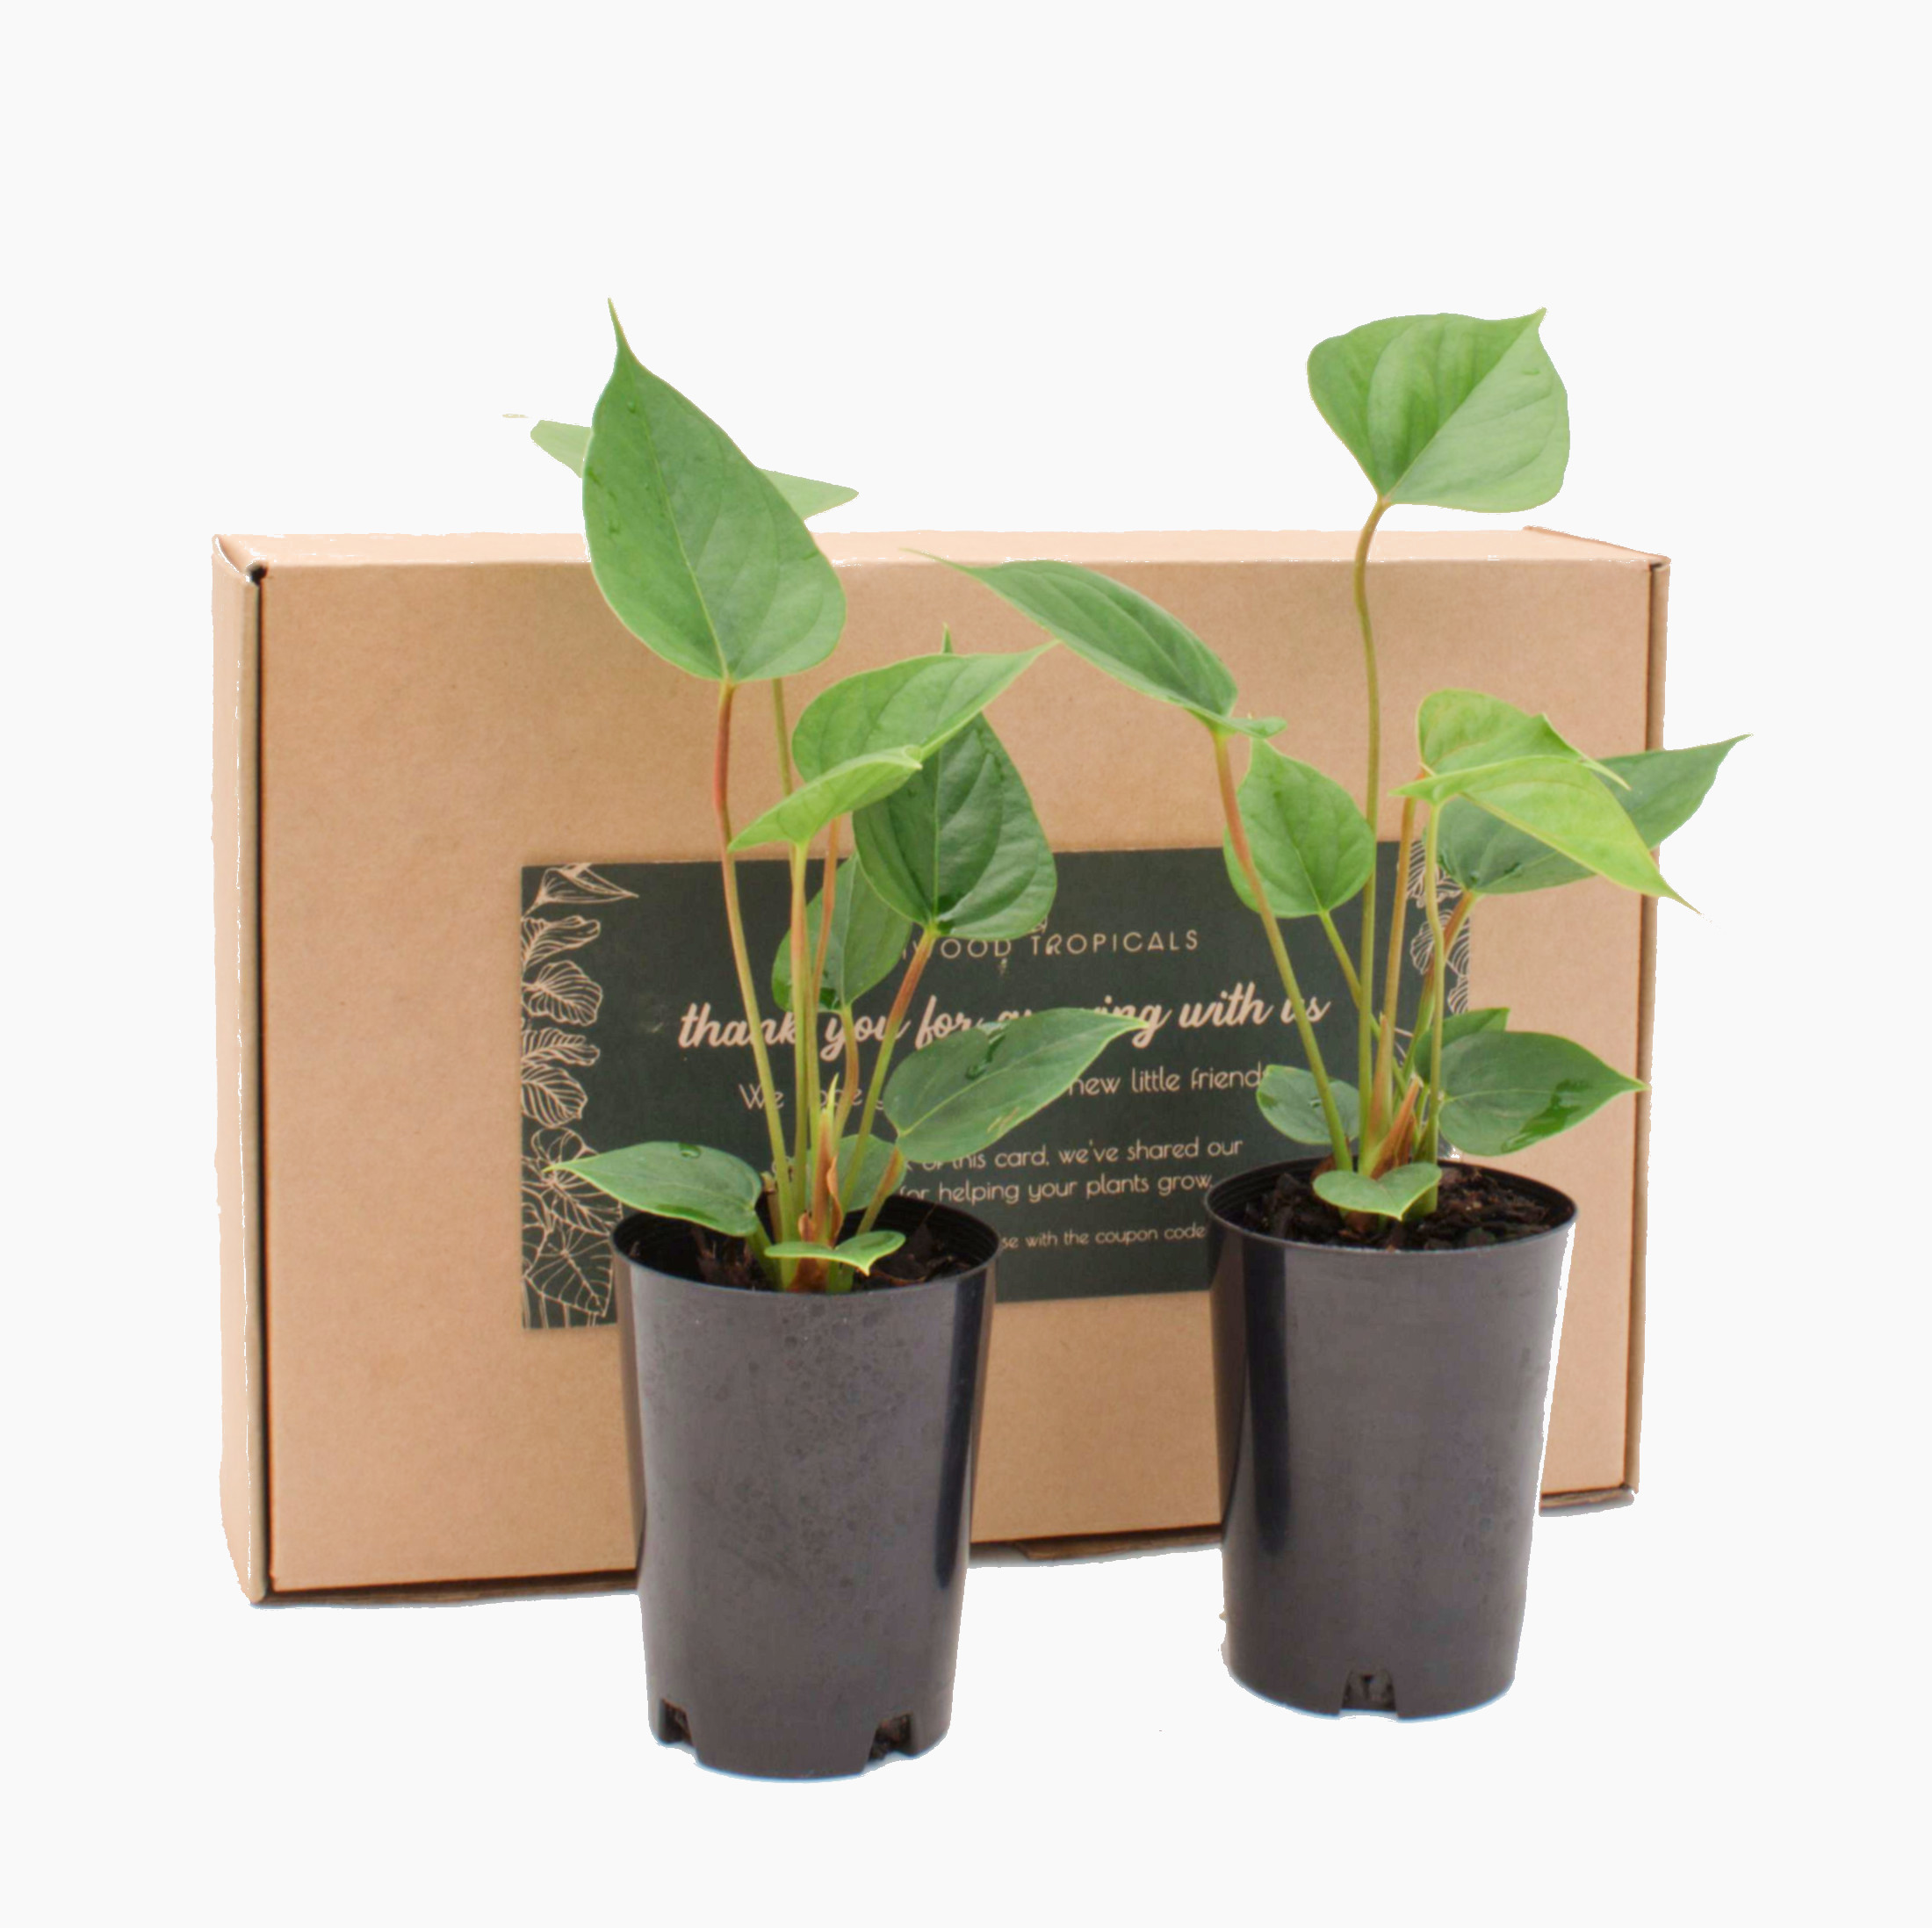 Palmwood Tropicals Online Plants - Two Plant Pack Angle